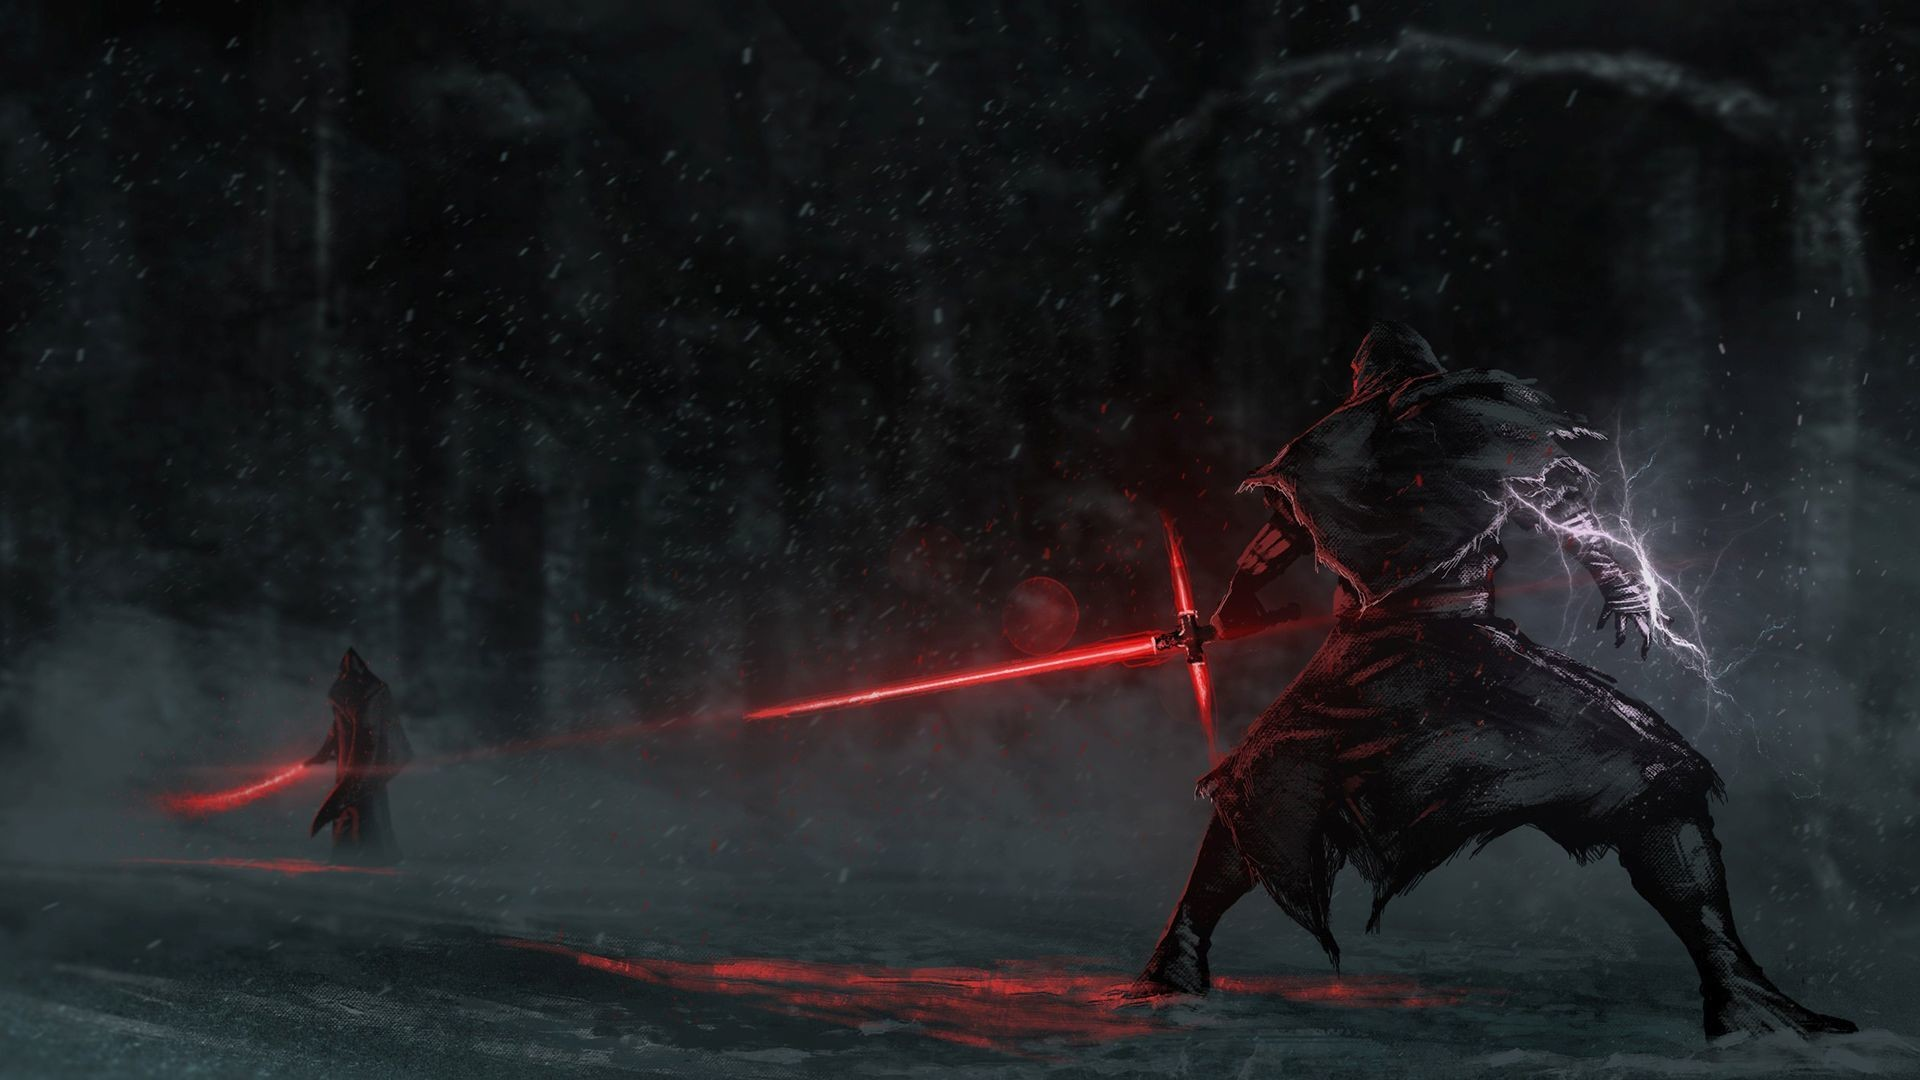 1920x1080 Fighting with lightsabers HD Wallpaper